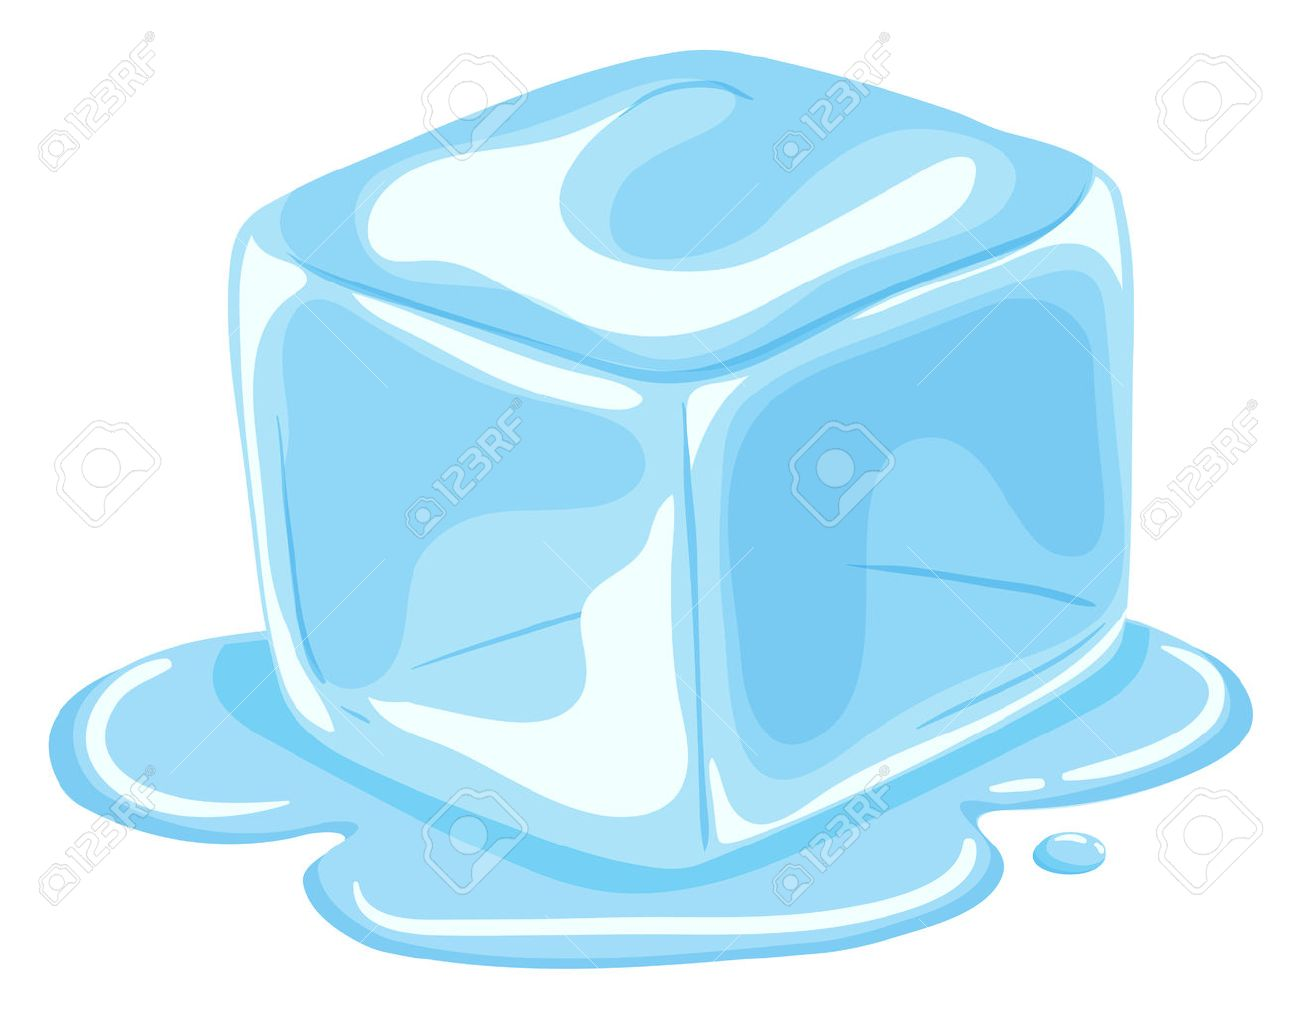 piece of ice cube melting illustration royalty free cliparts rh 123rf com ice cube clipart images melting ice cubes clipart